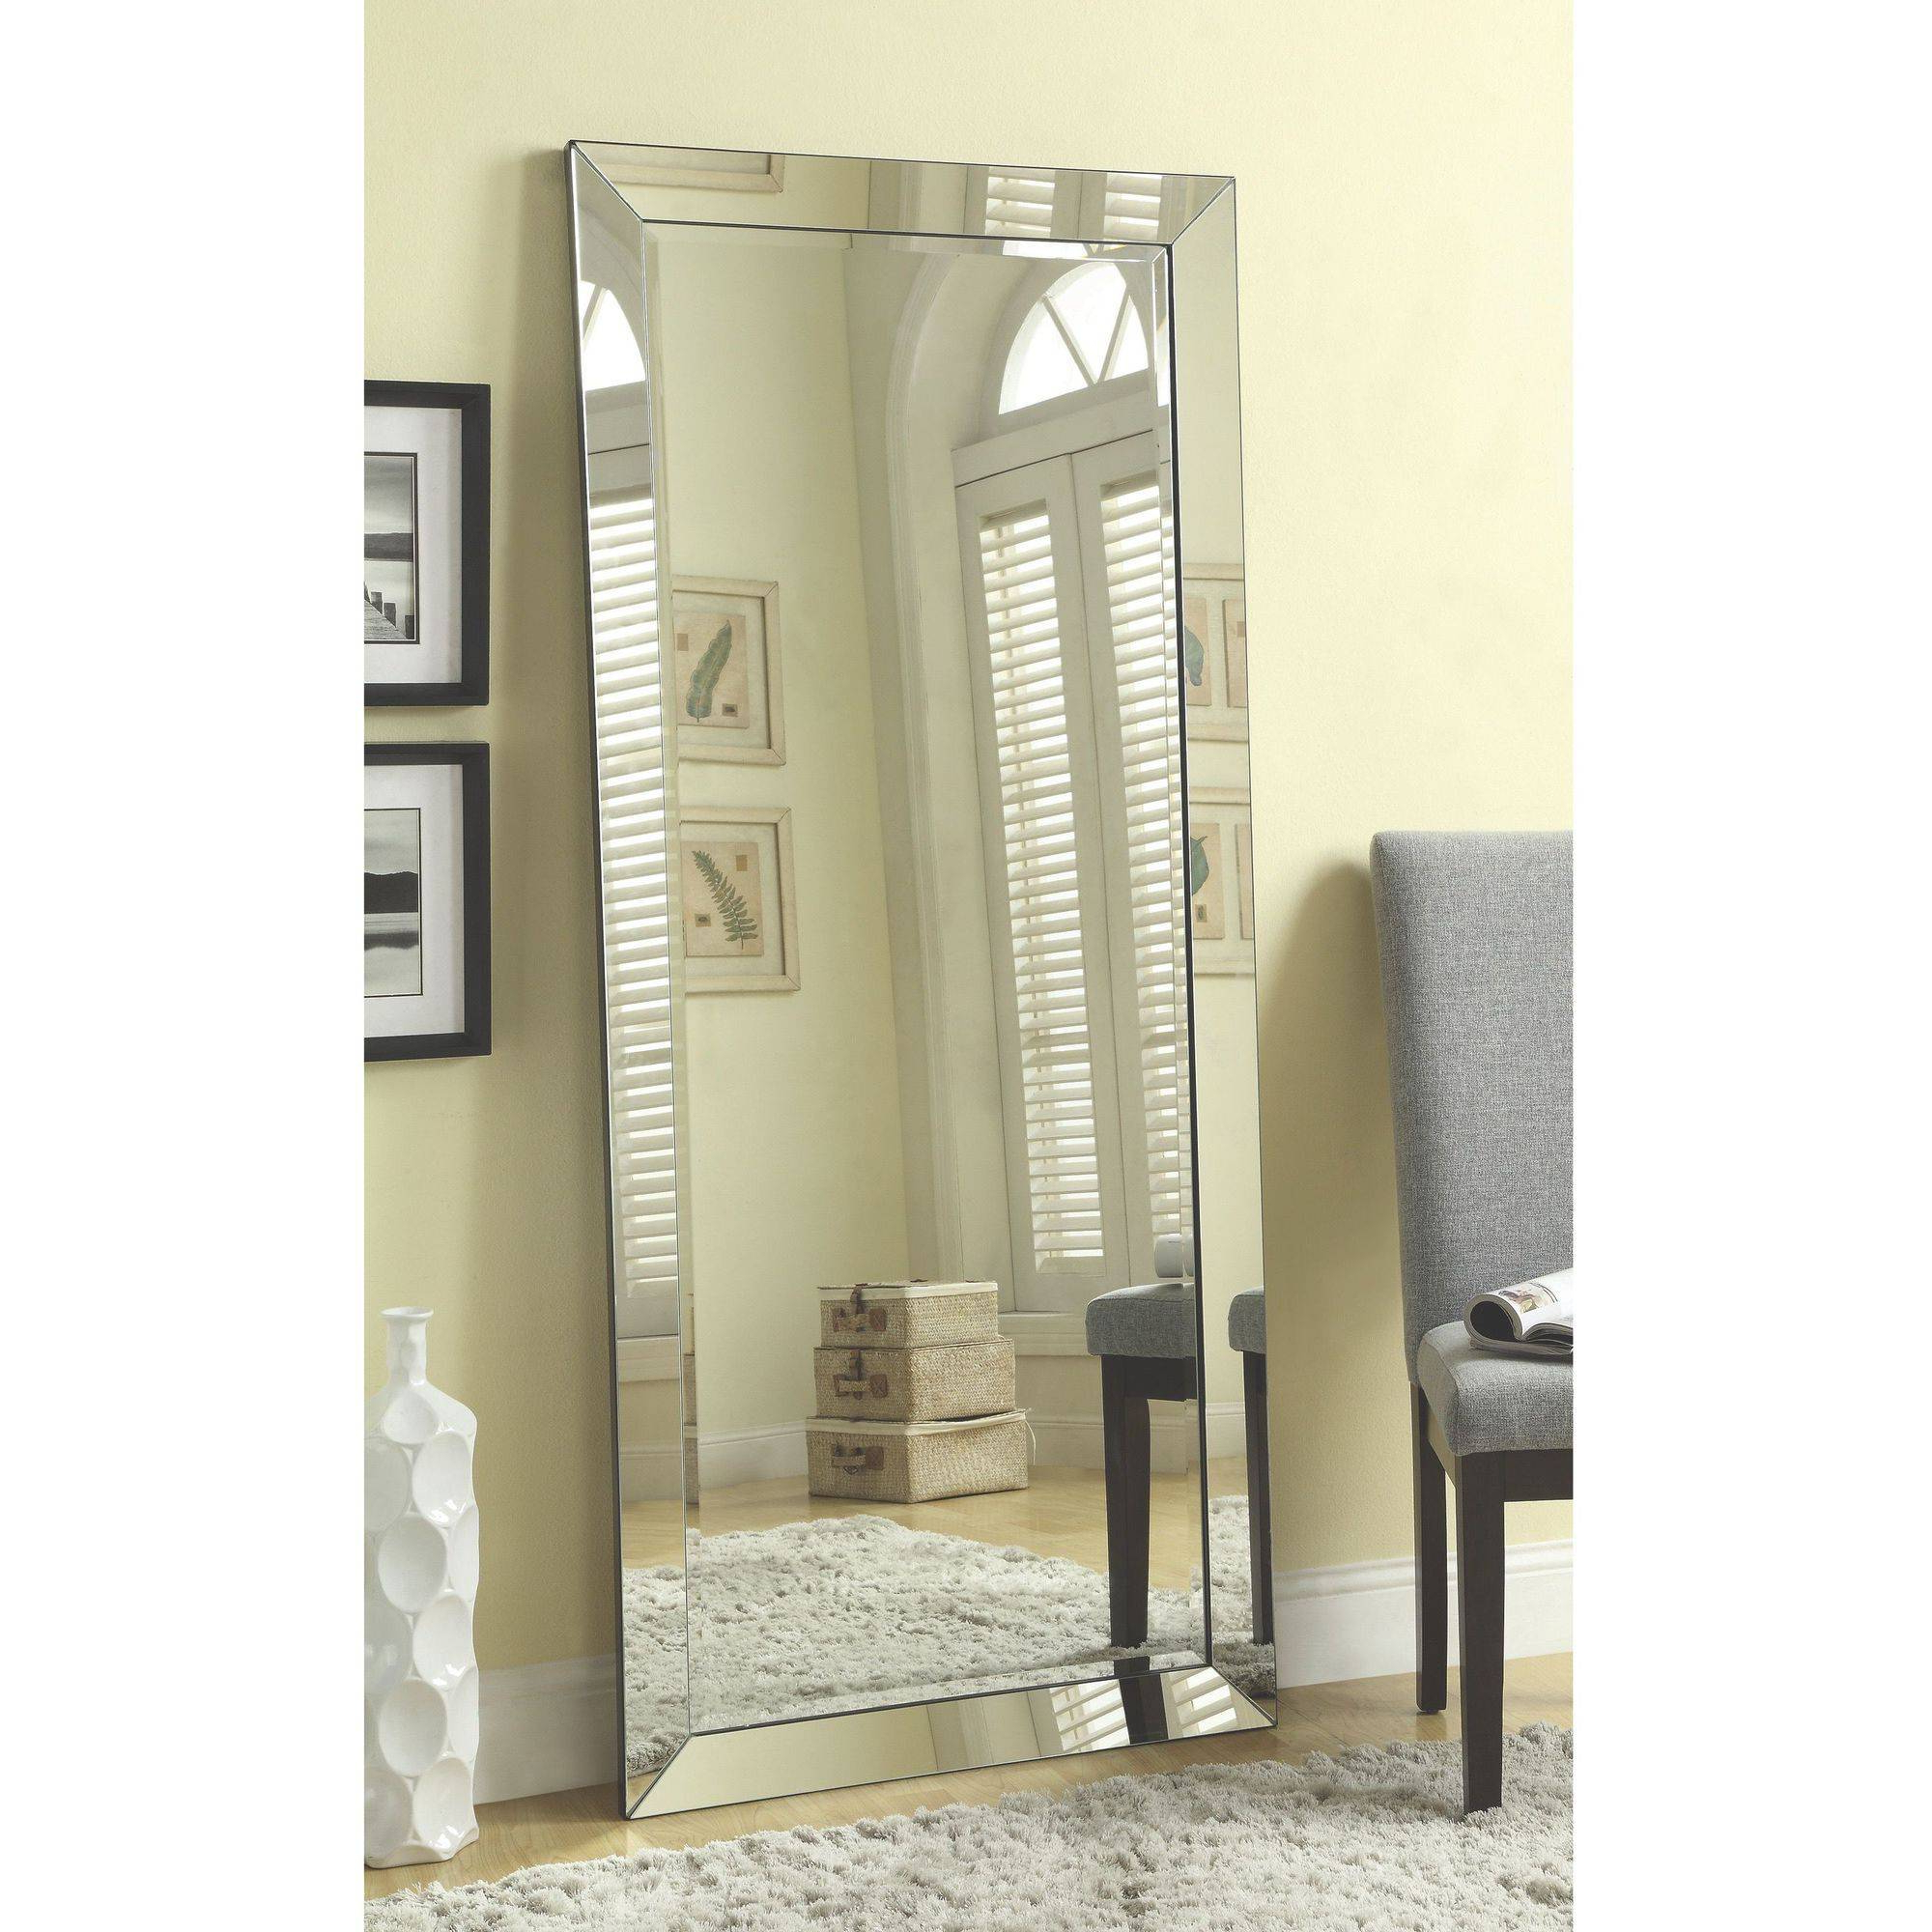 Favorite Large Beveled Wall Mirrors With 34 Most Unbeatable Long Wall Mirrors Mirror No Frame Large Frameless (View 7 of 20)